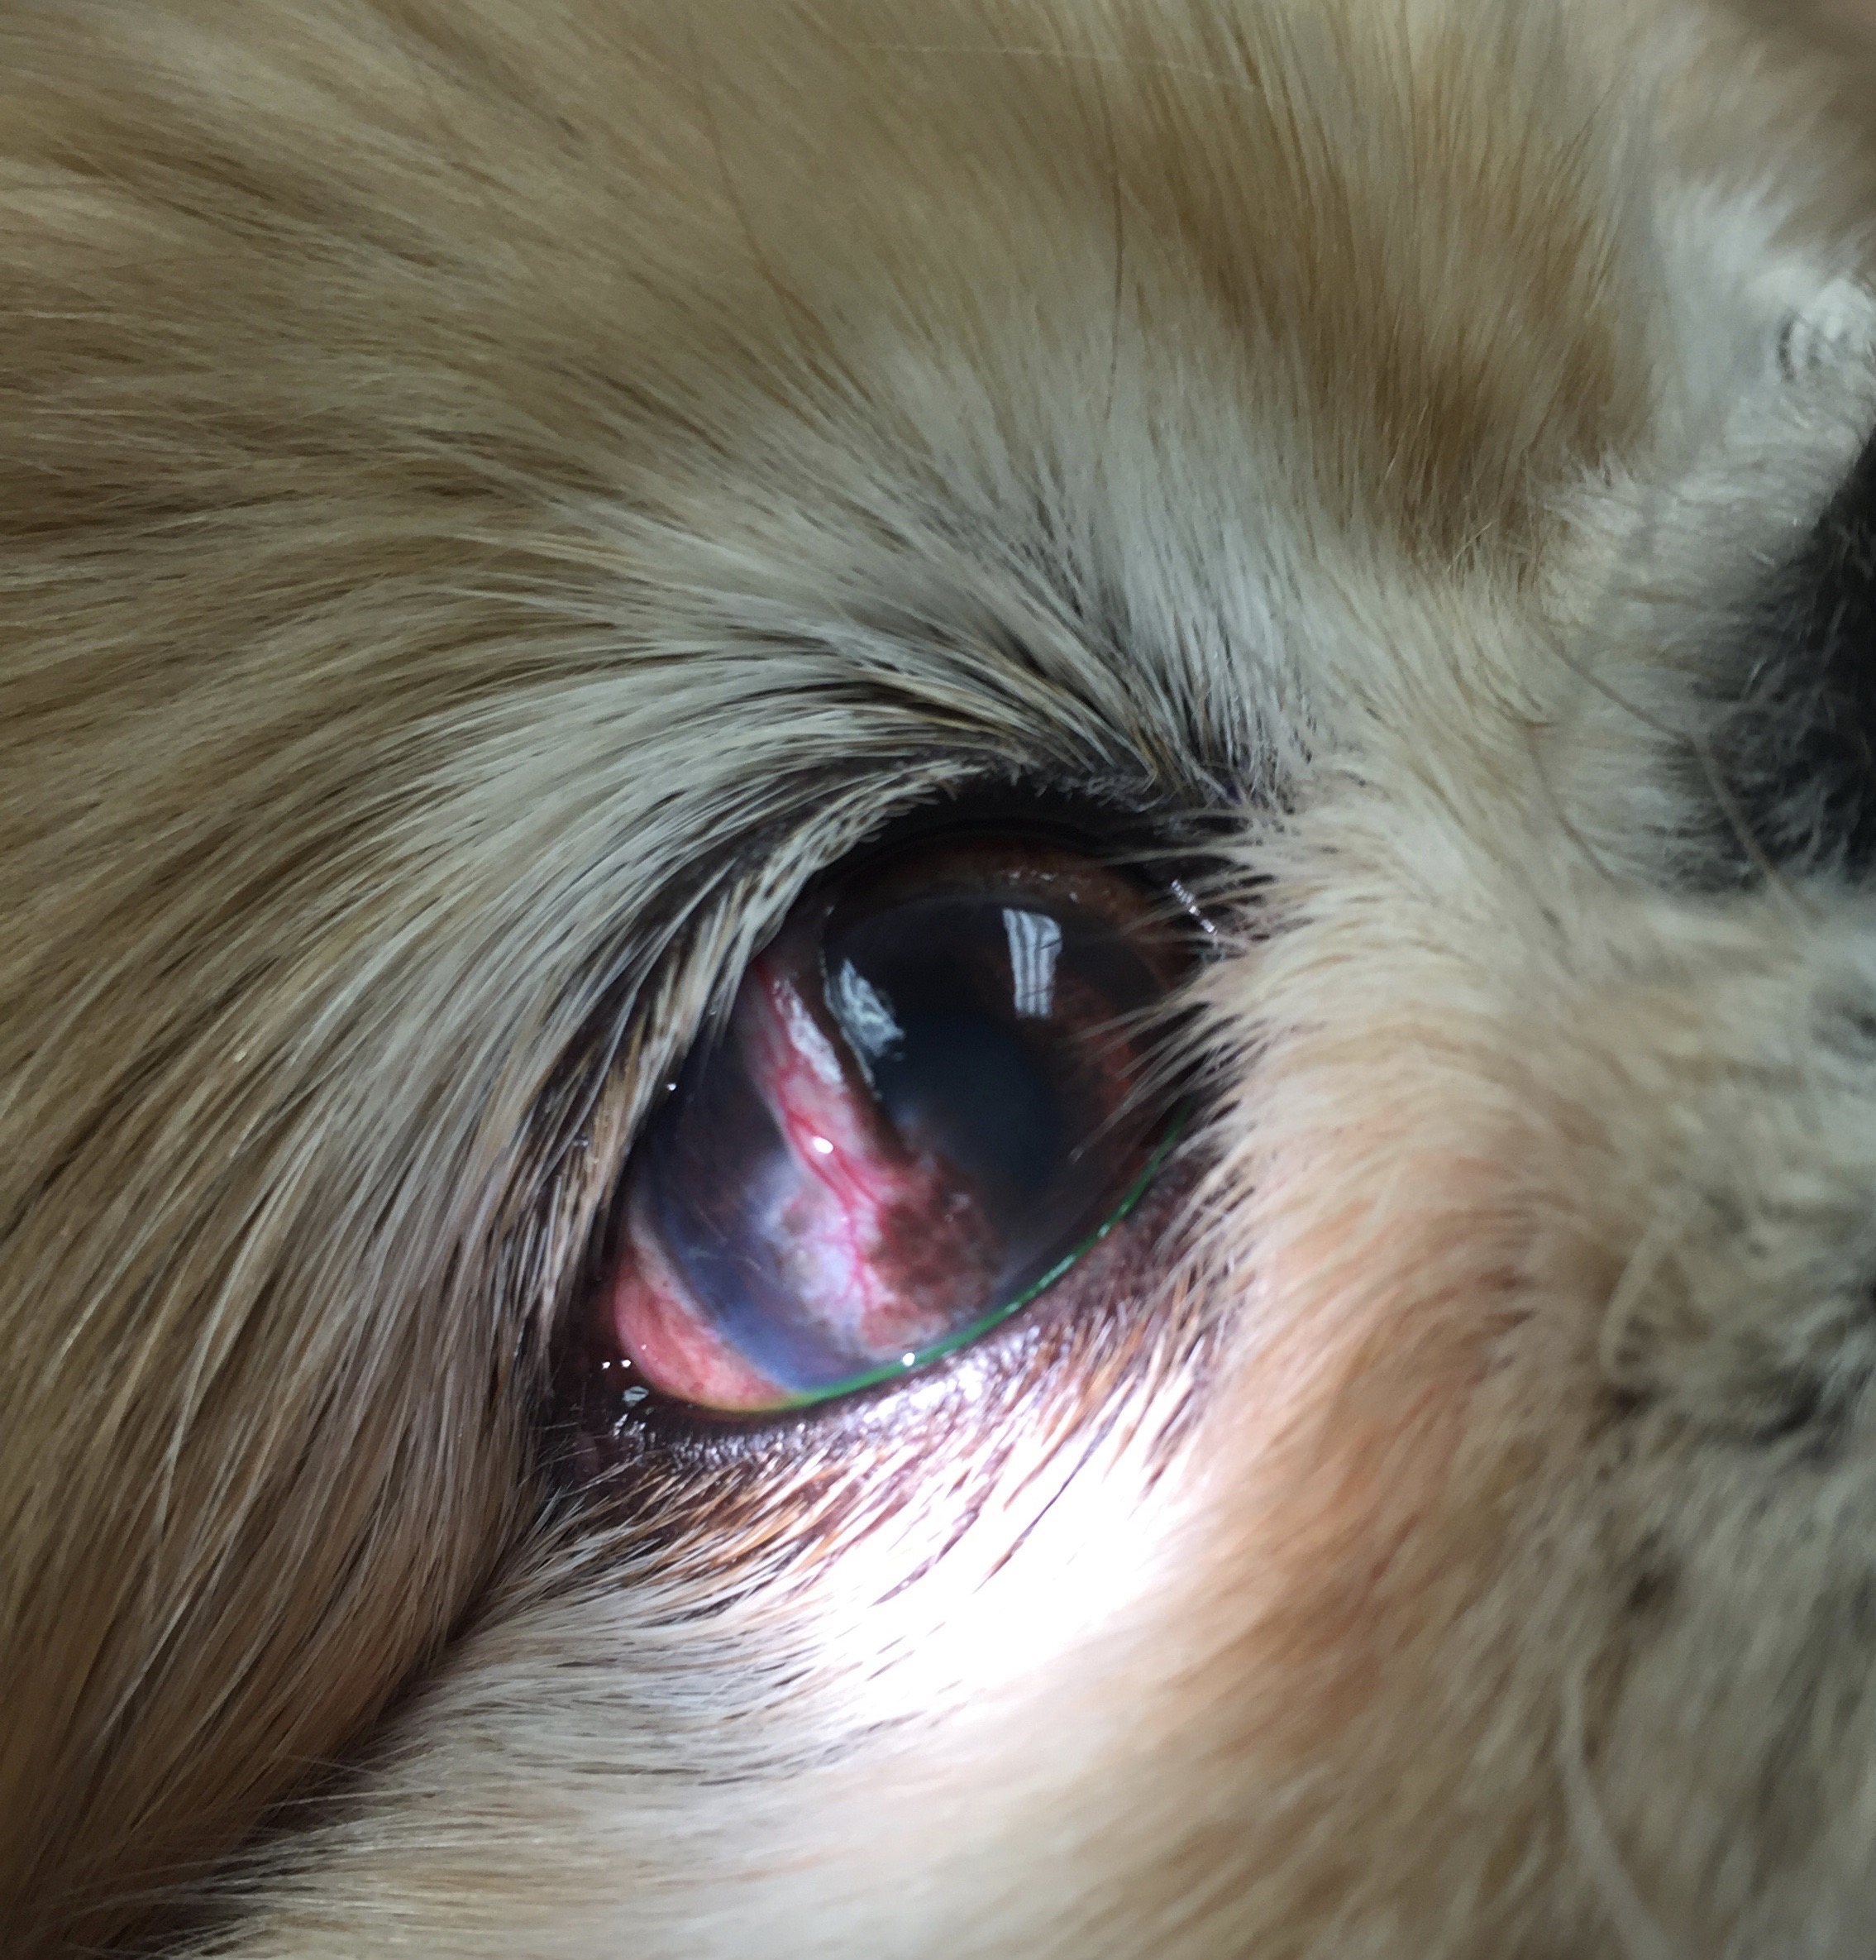 How To Treat Eye Ulcers In Dogs